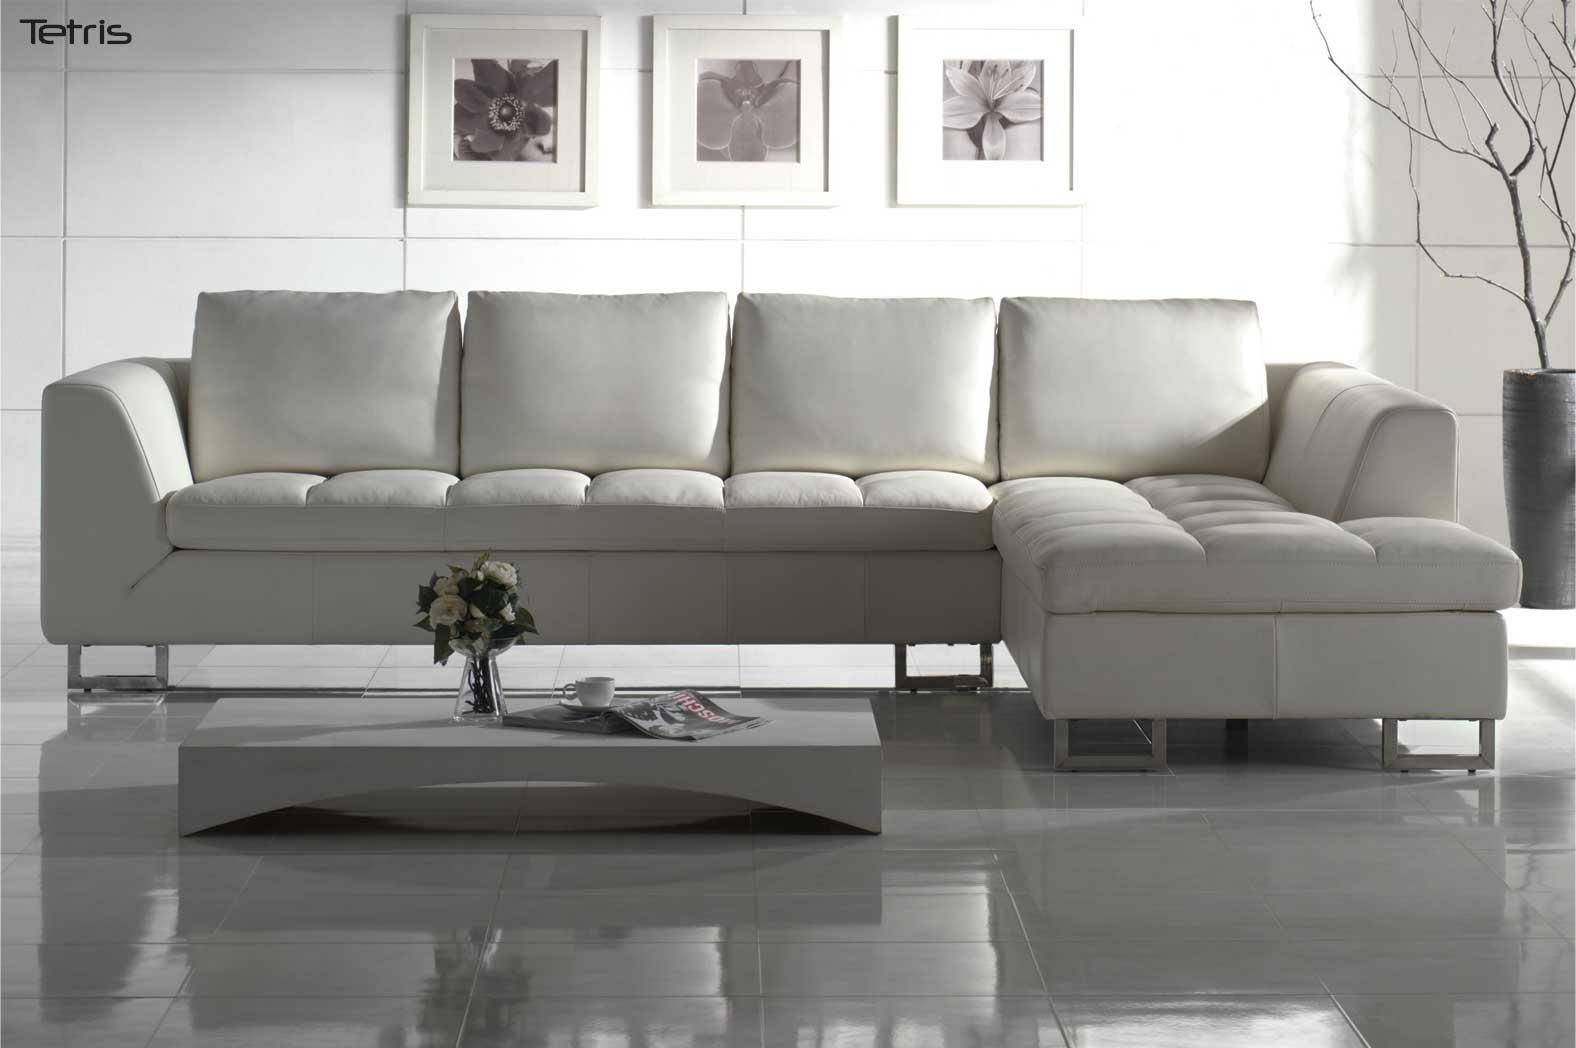 White Leather Sectional Sofa - S3Net - Sectional Sofas Sale with regard to White Sectional Sofa For Sale (Image 29 of 30)